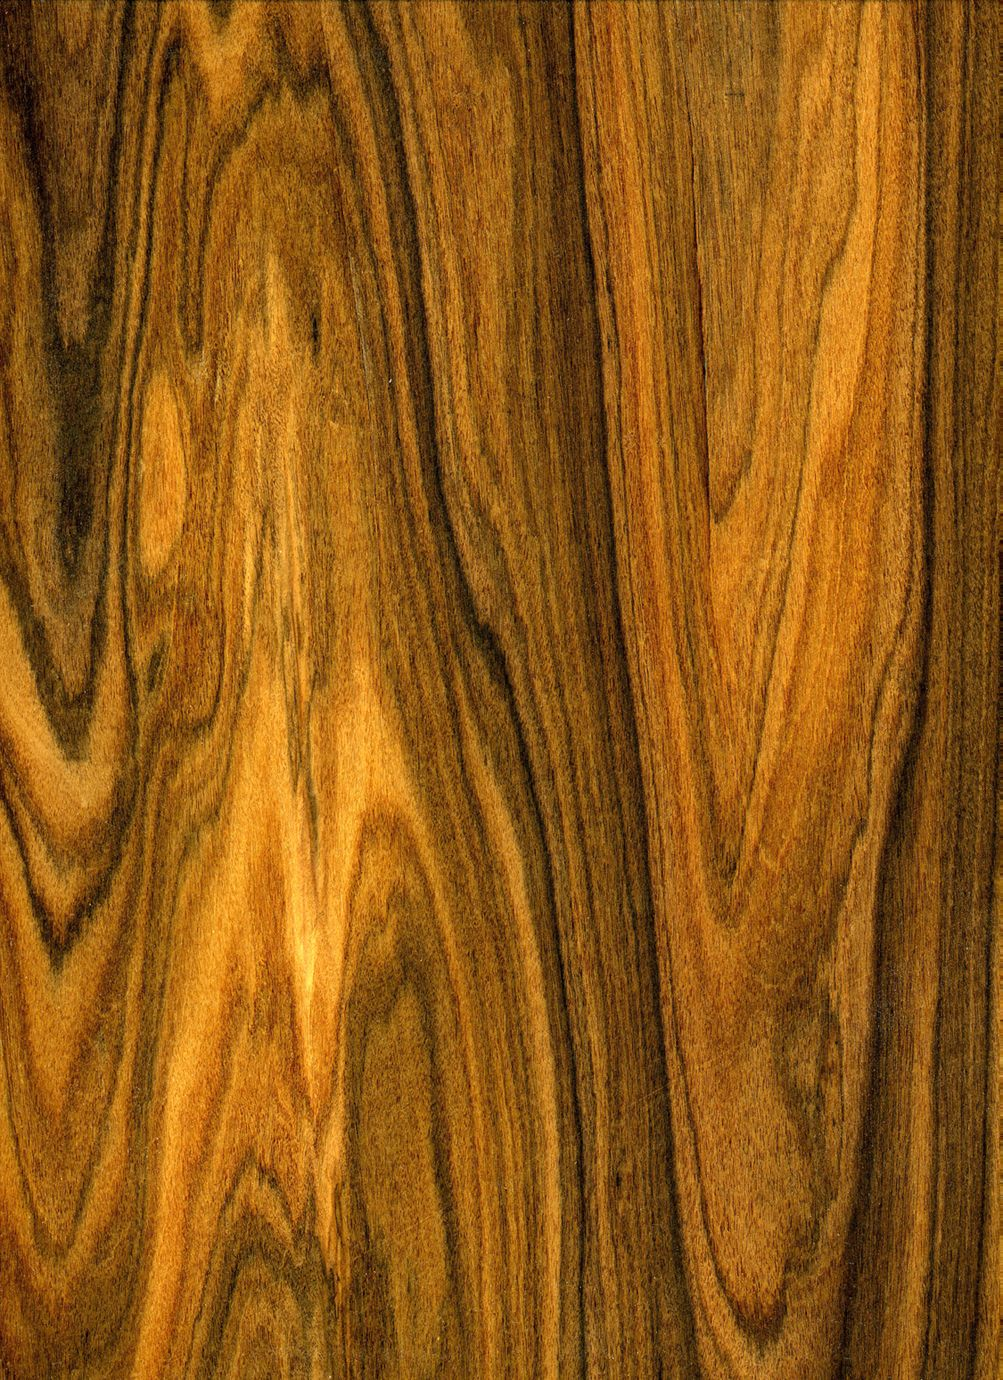 Exotic lumber inc stocks over species of wood